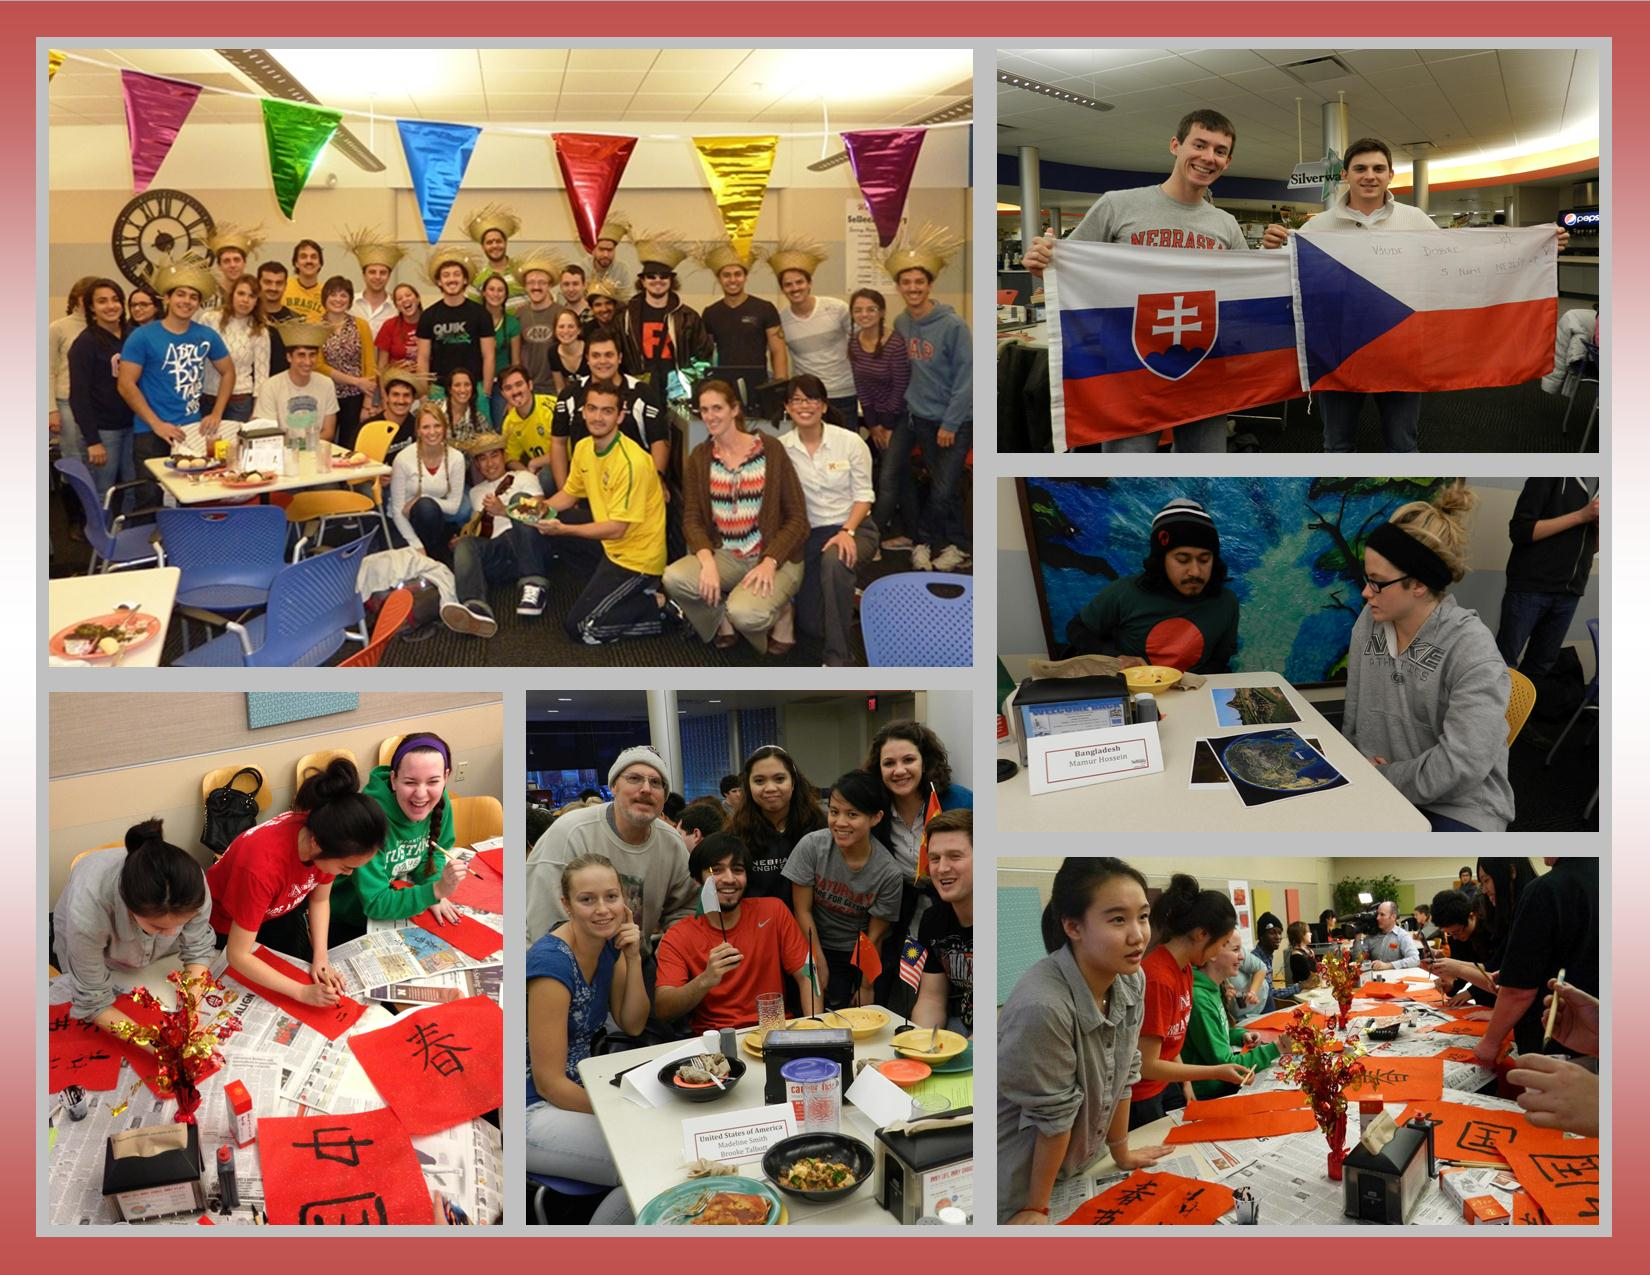 Past cultural programs by University Housing